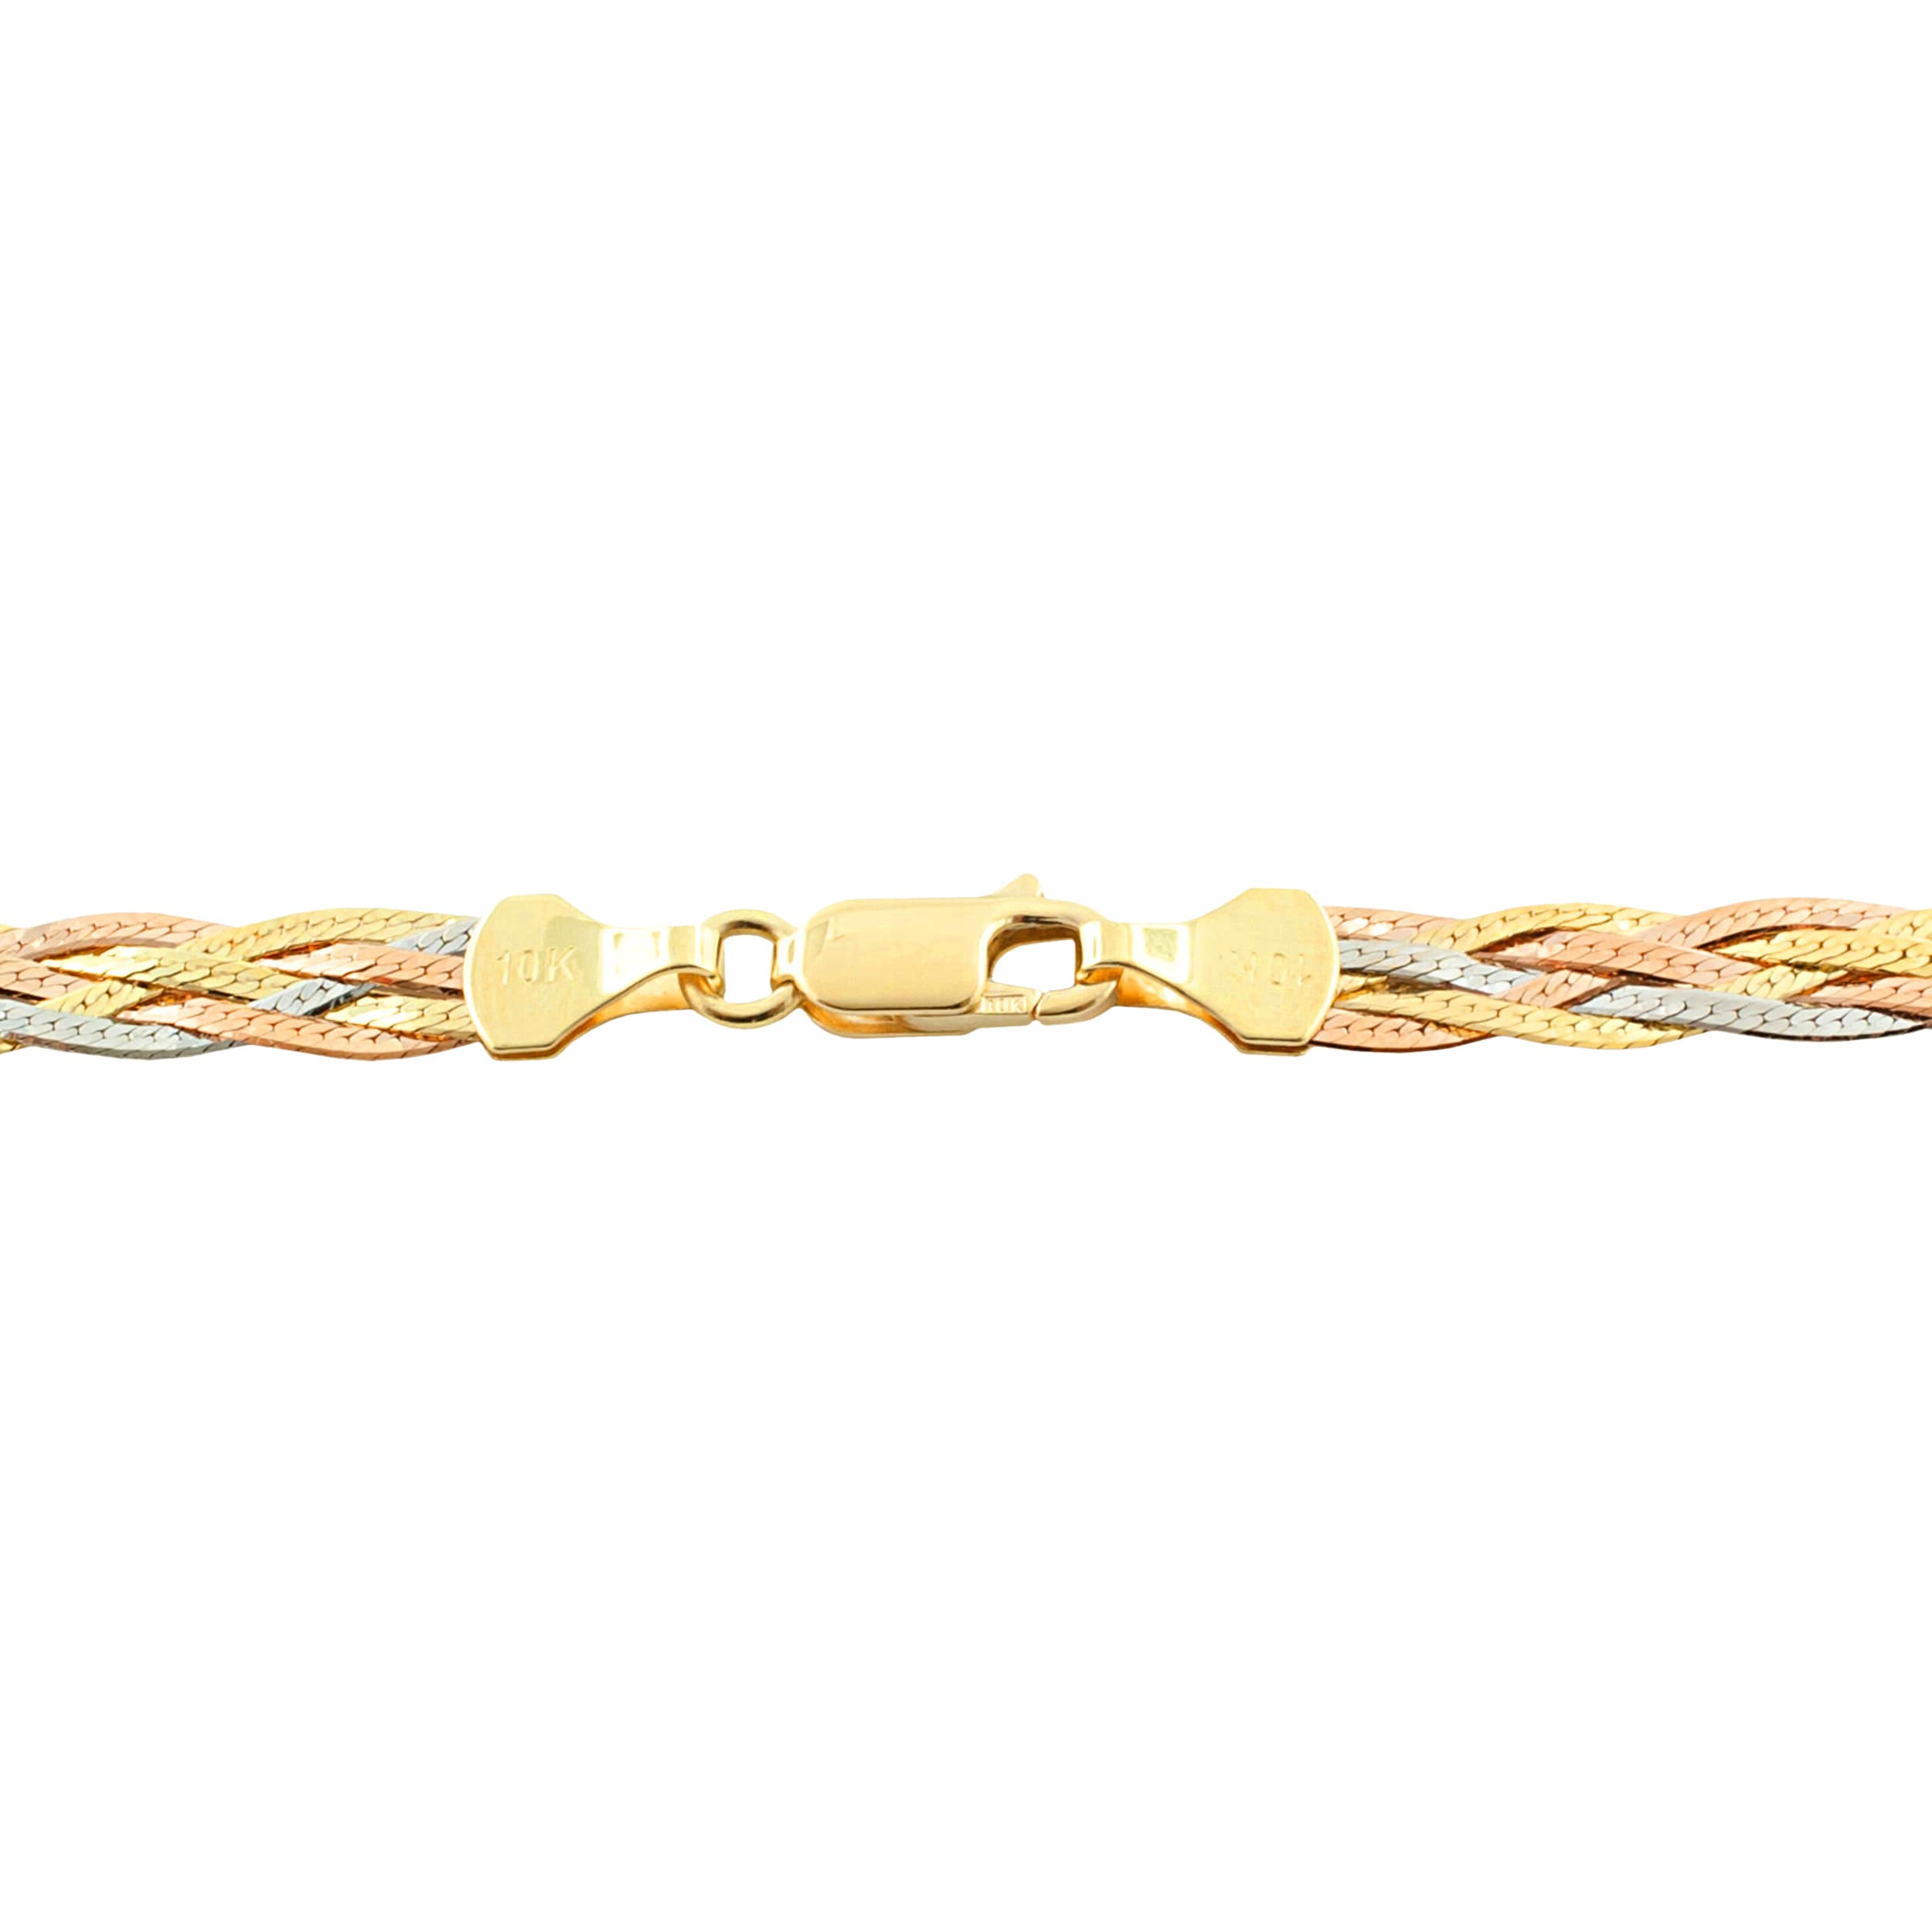 shipping jewelry bangle karat overstock bracelets herringbone inch bangles watches product strand fremada gold tricolor free today braided bracelet